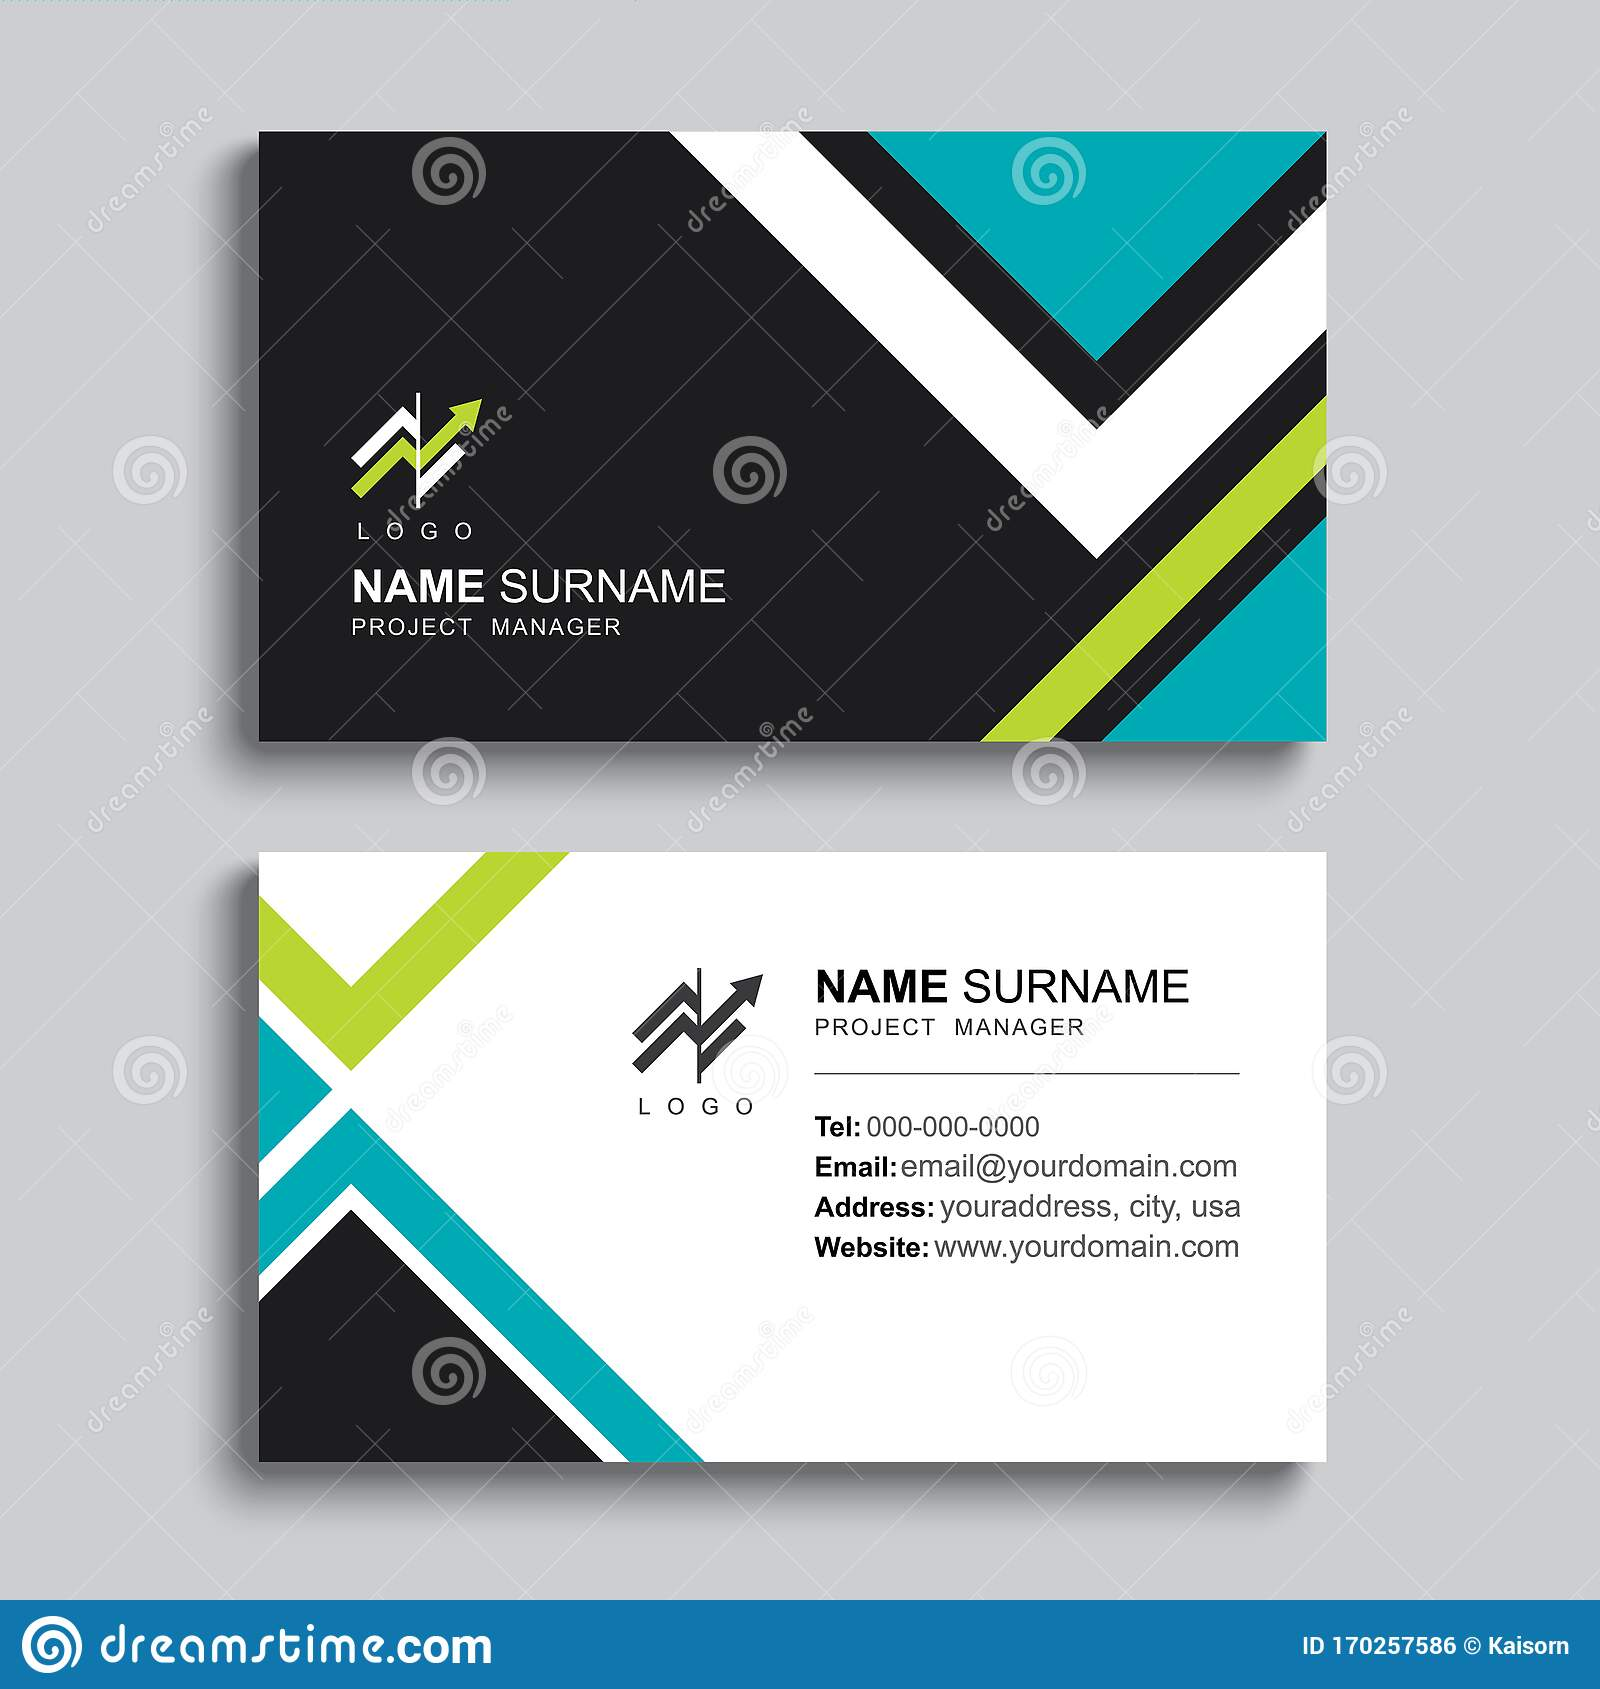 Business Card Stock Illustrations – 30,30,30 Business Card Stock ...